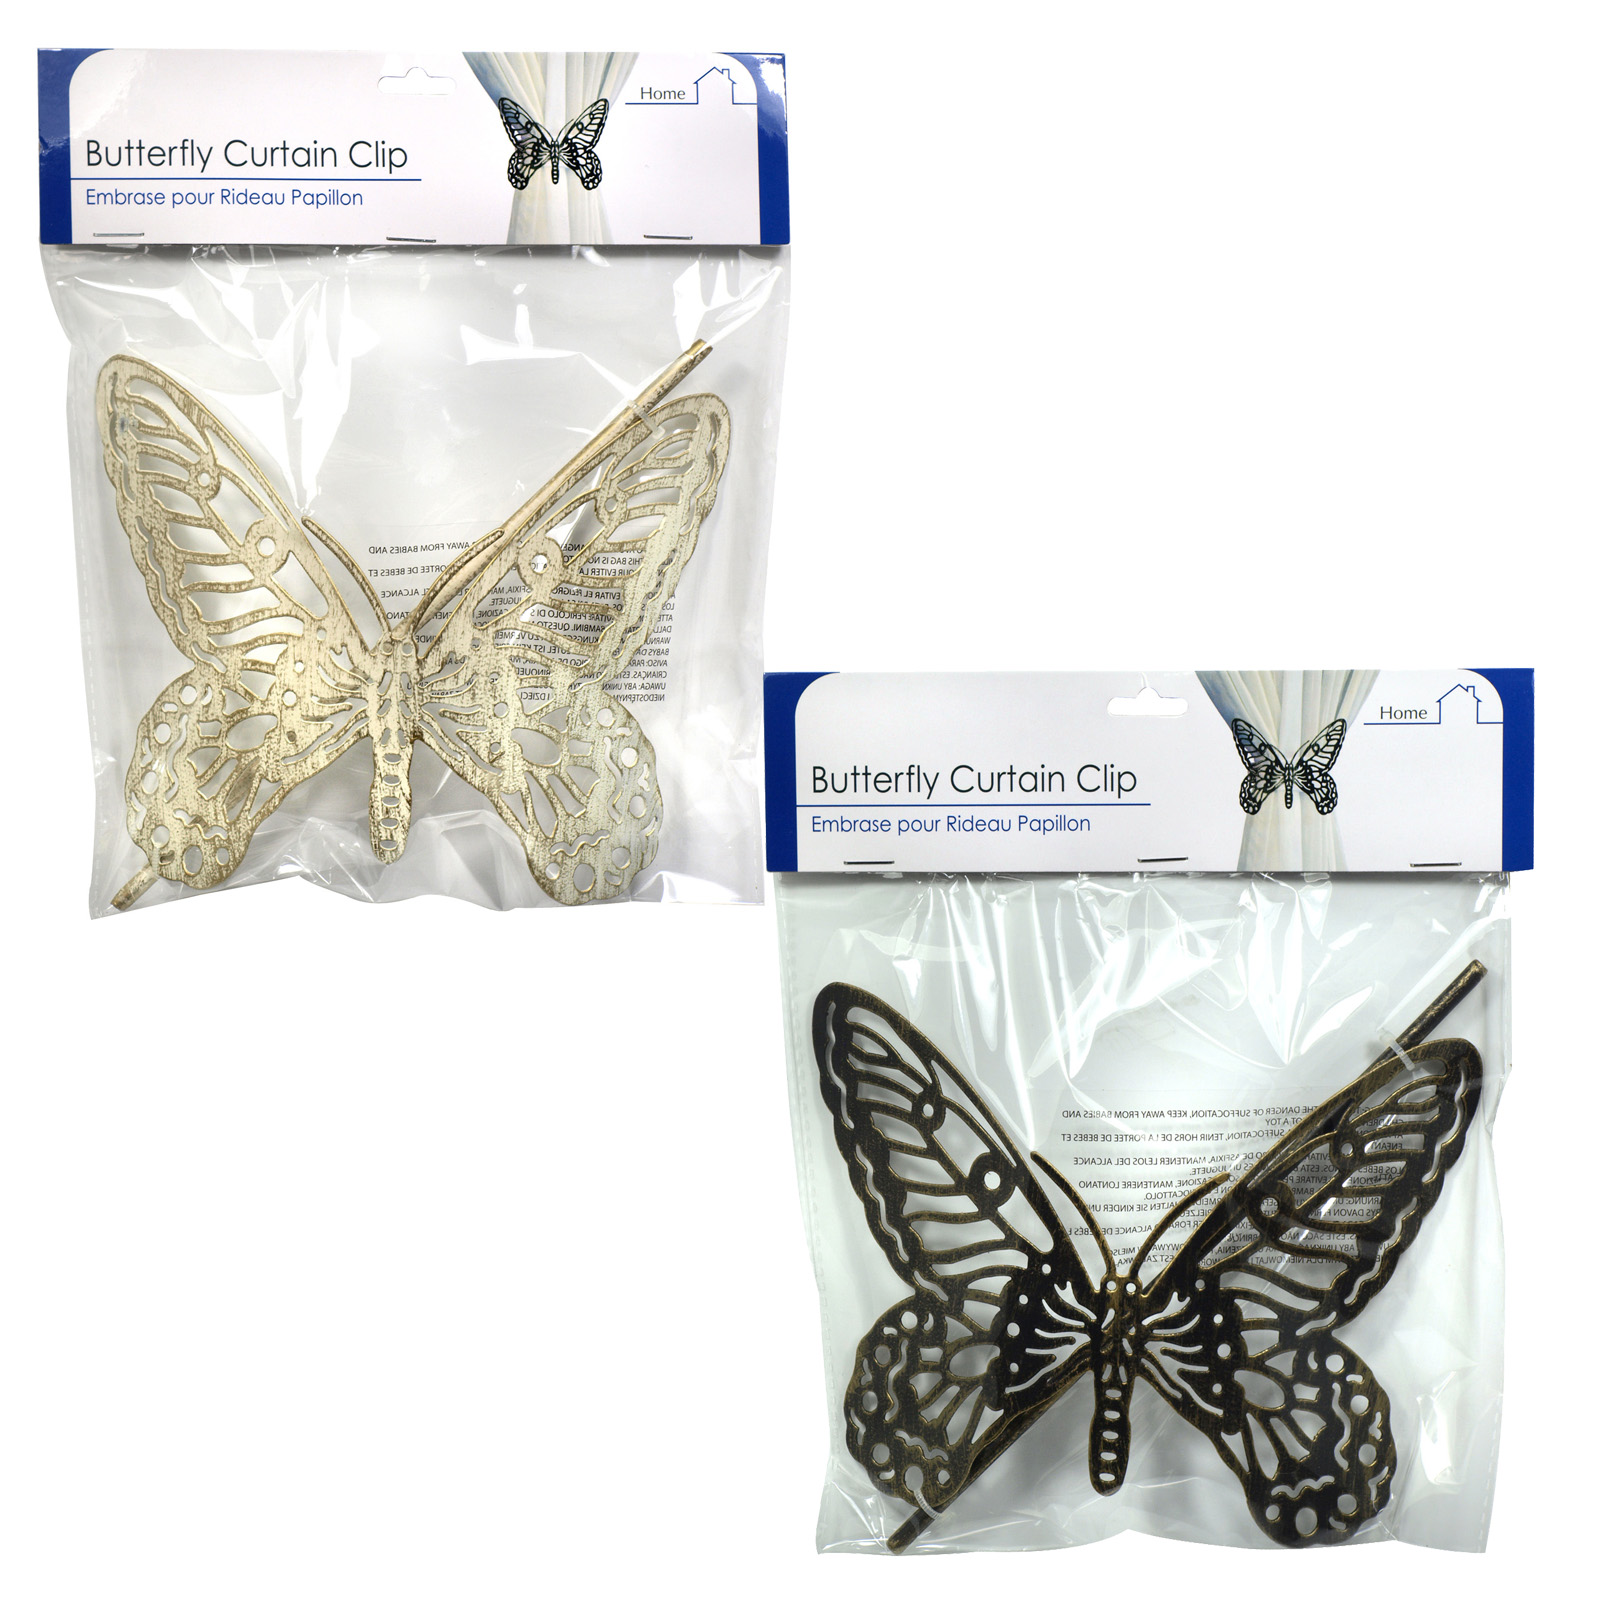 SIL METAL BUTTERFLY CURTAIN CLIP X12